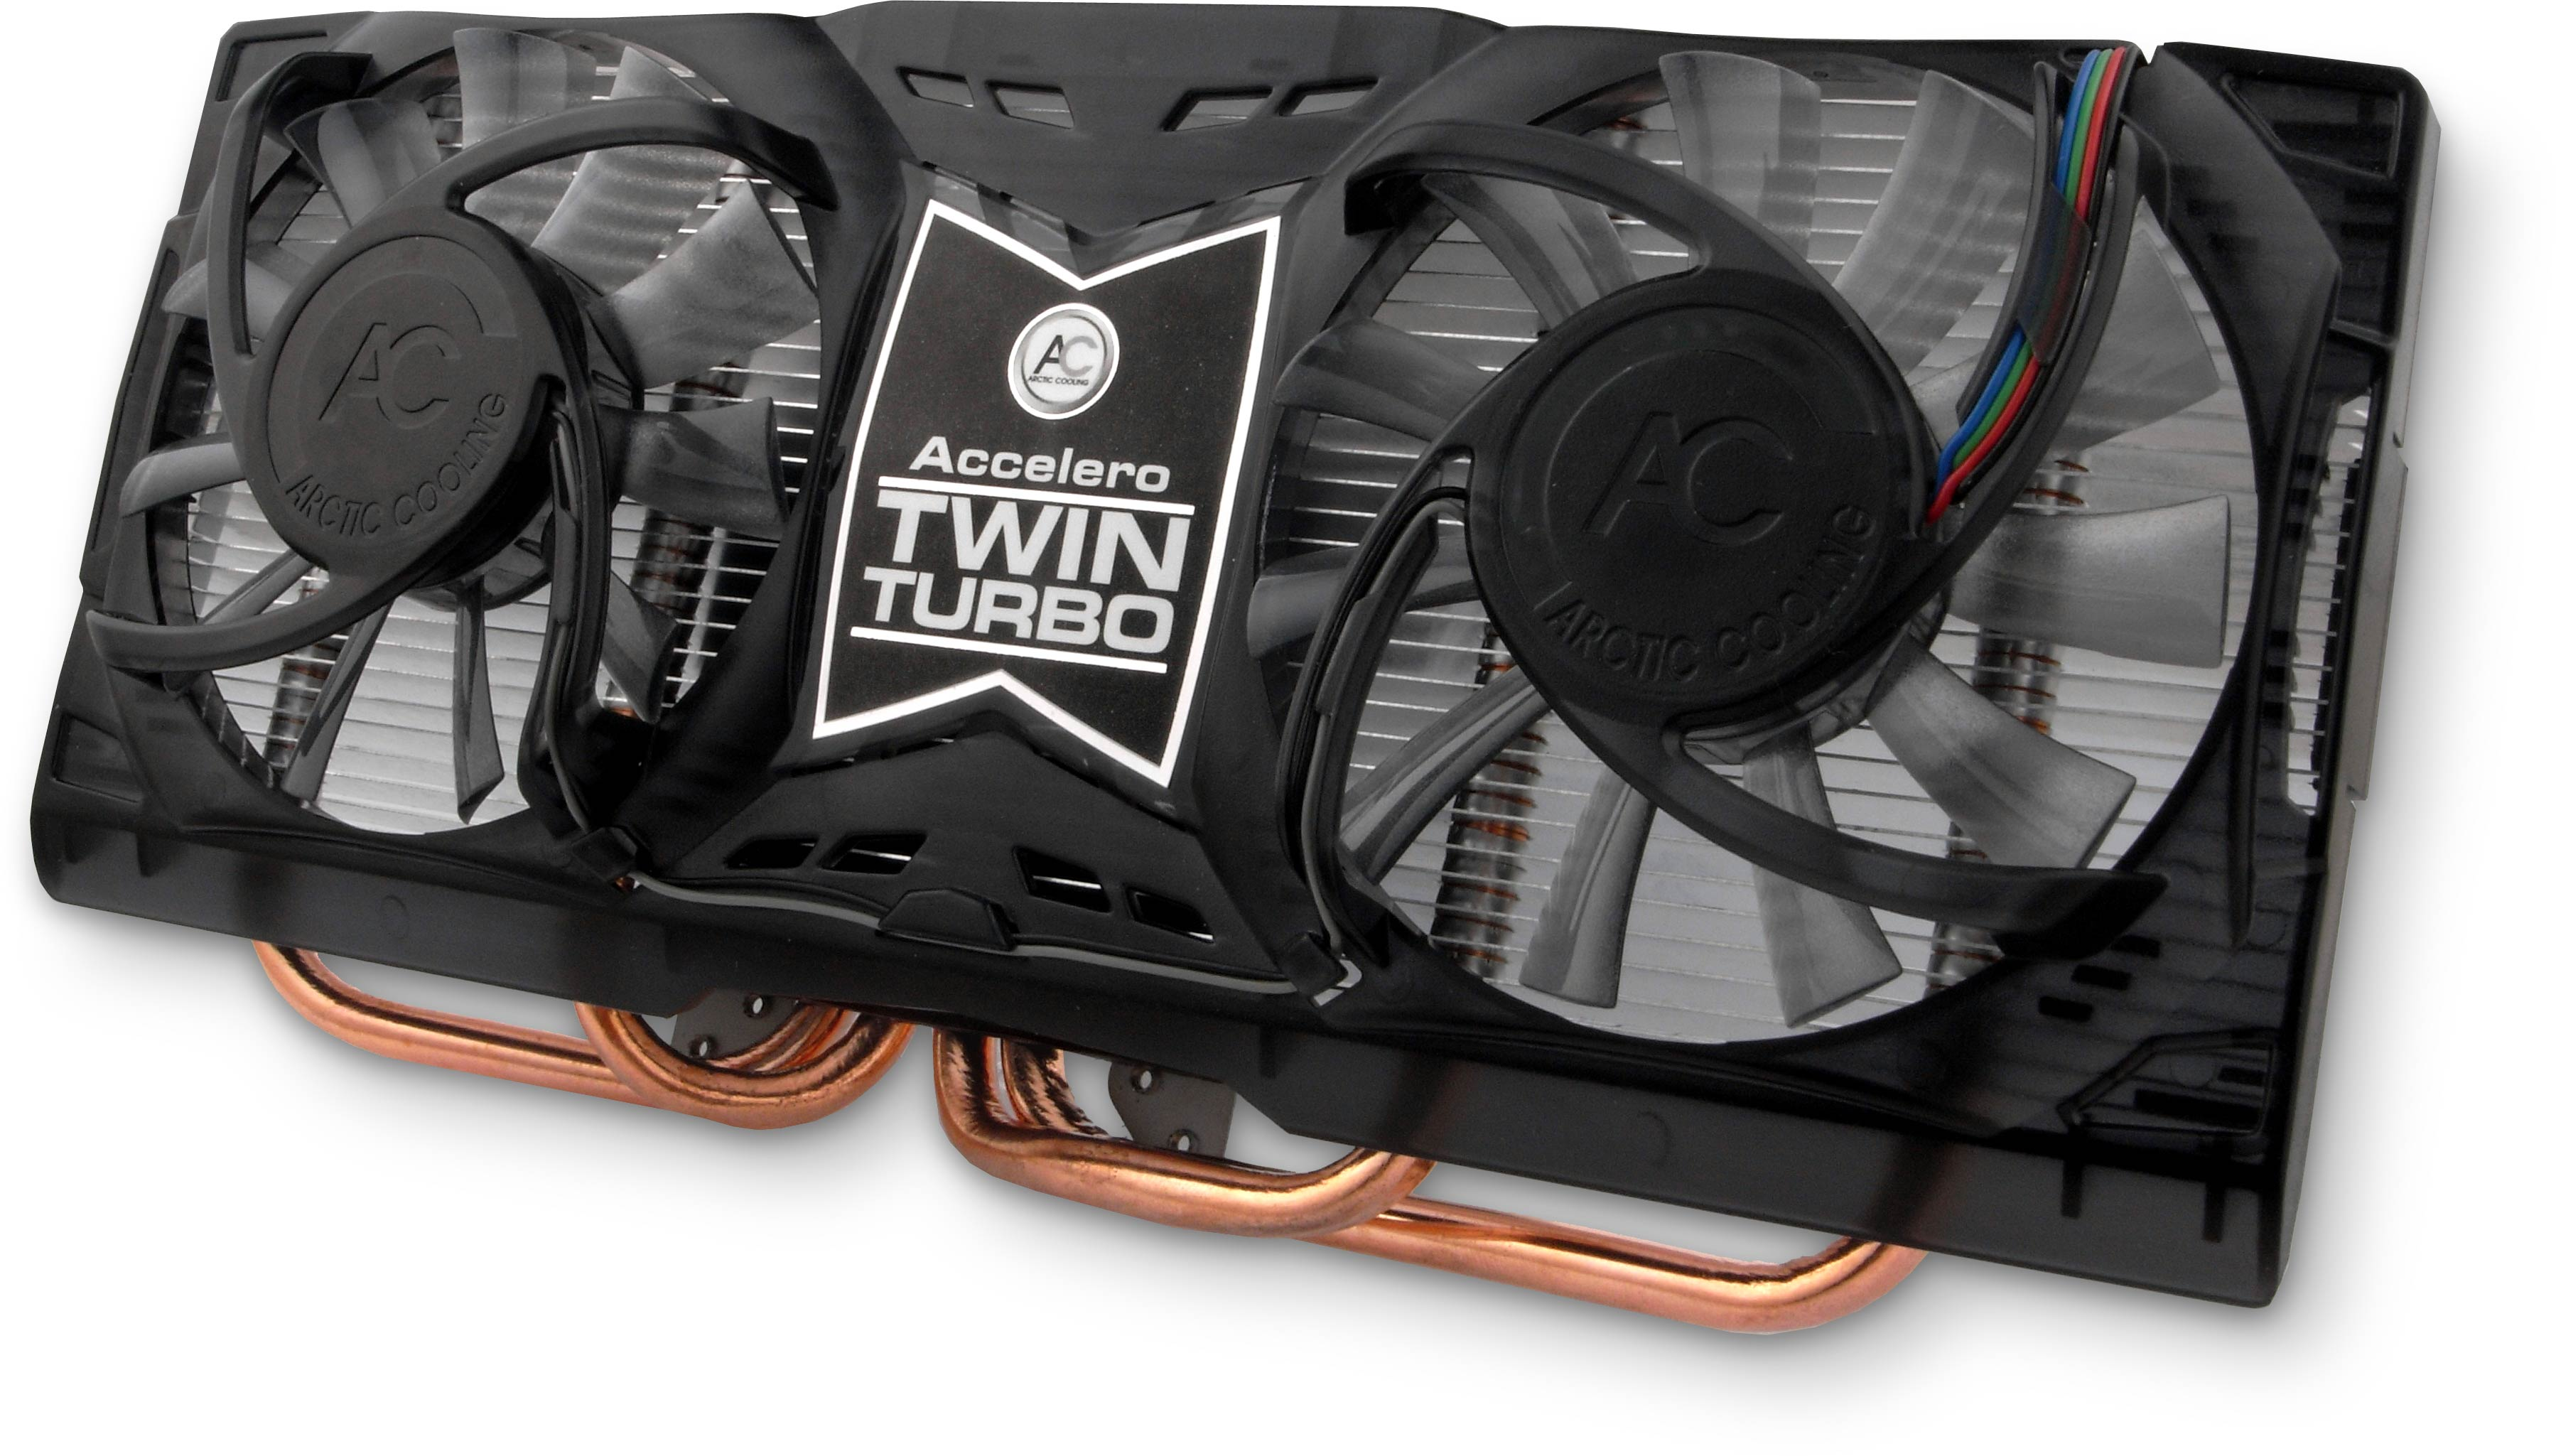 Accelero Twin Turbo Dual Fan Vga Cooler Ac Wiring Electric Fans Arctic Cooling